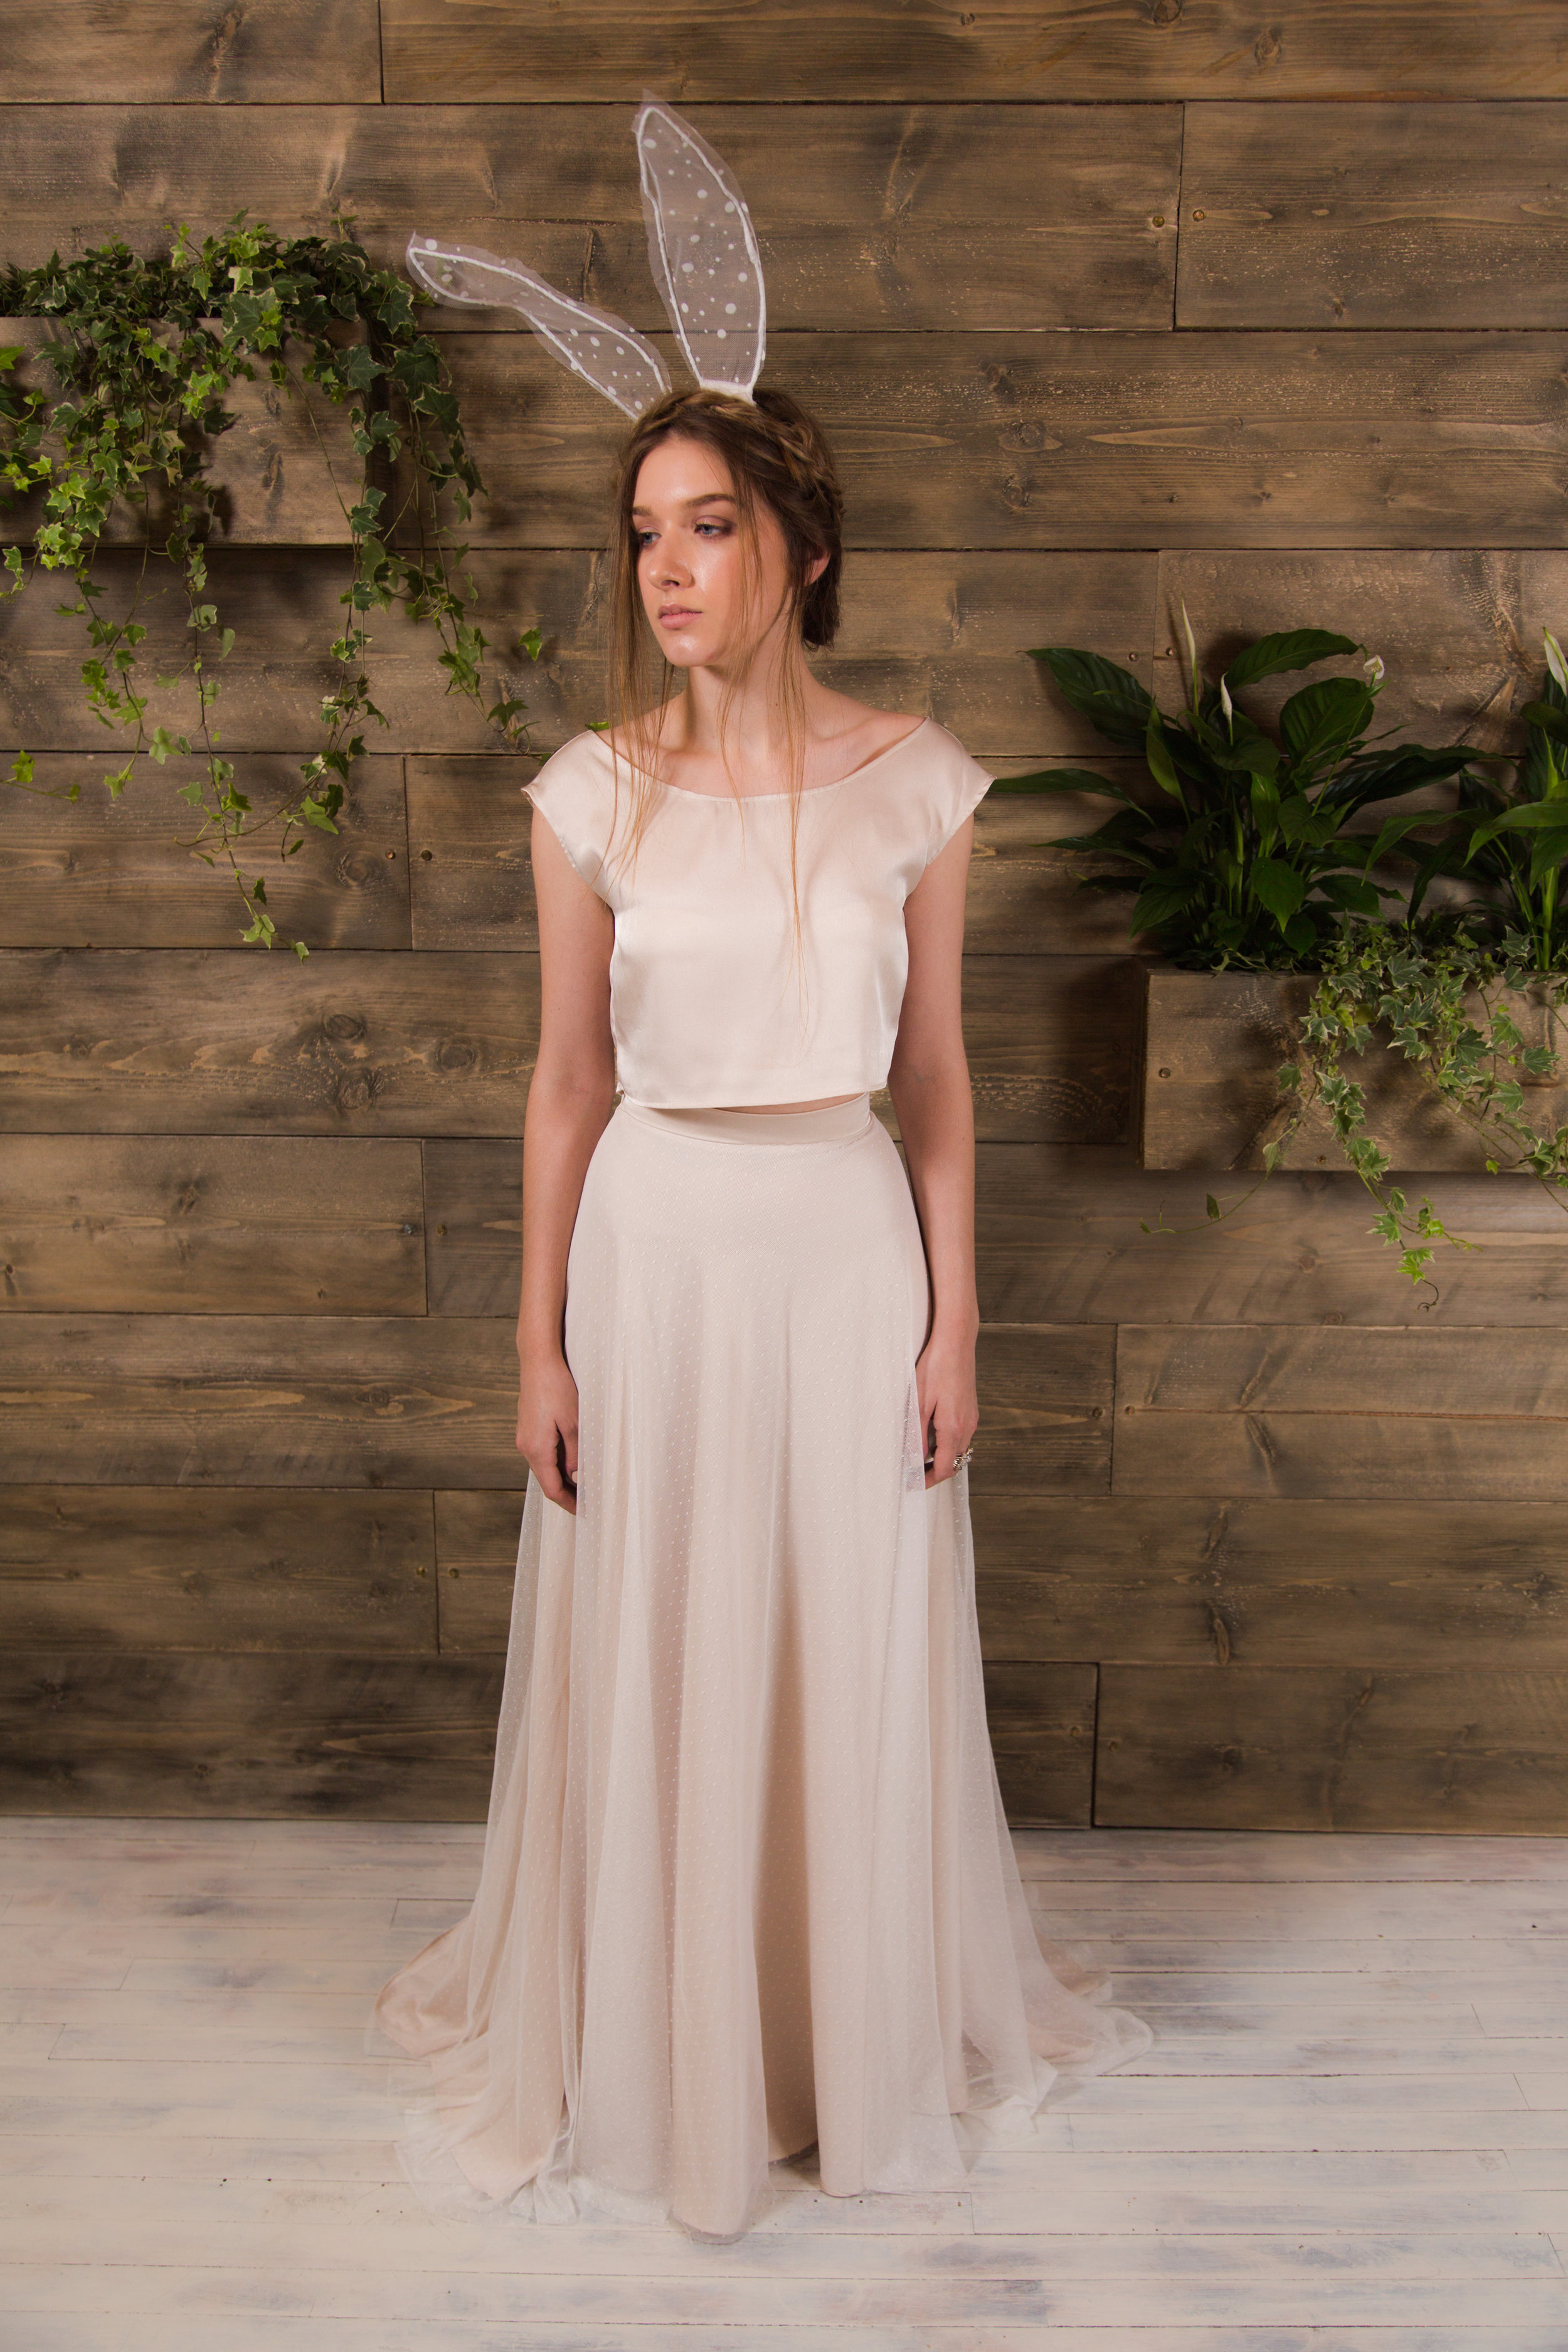 Rachel Burgess Bridal Boutique- 'Frankie' from the E&W Couture Spotlight Collection. Photo By Jon Turtle Photographer.jpg